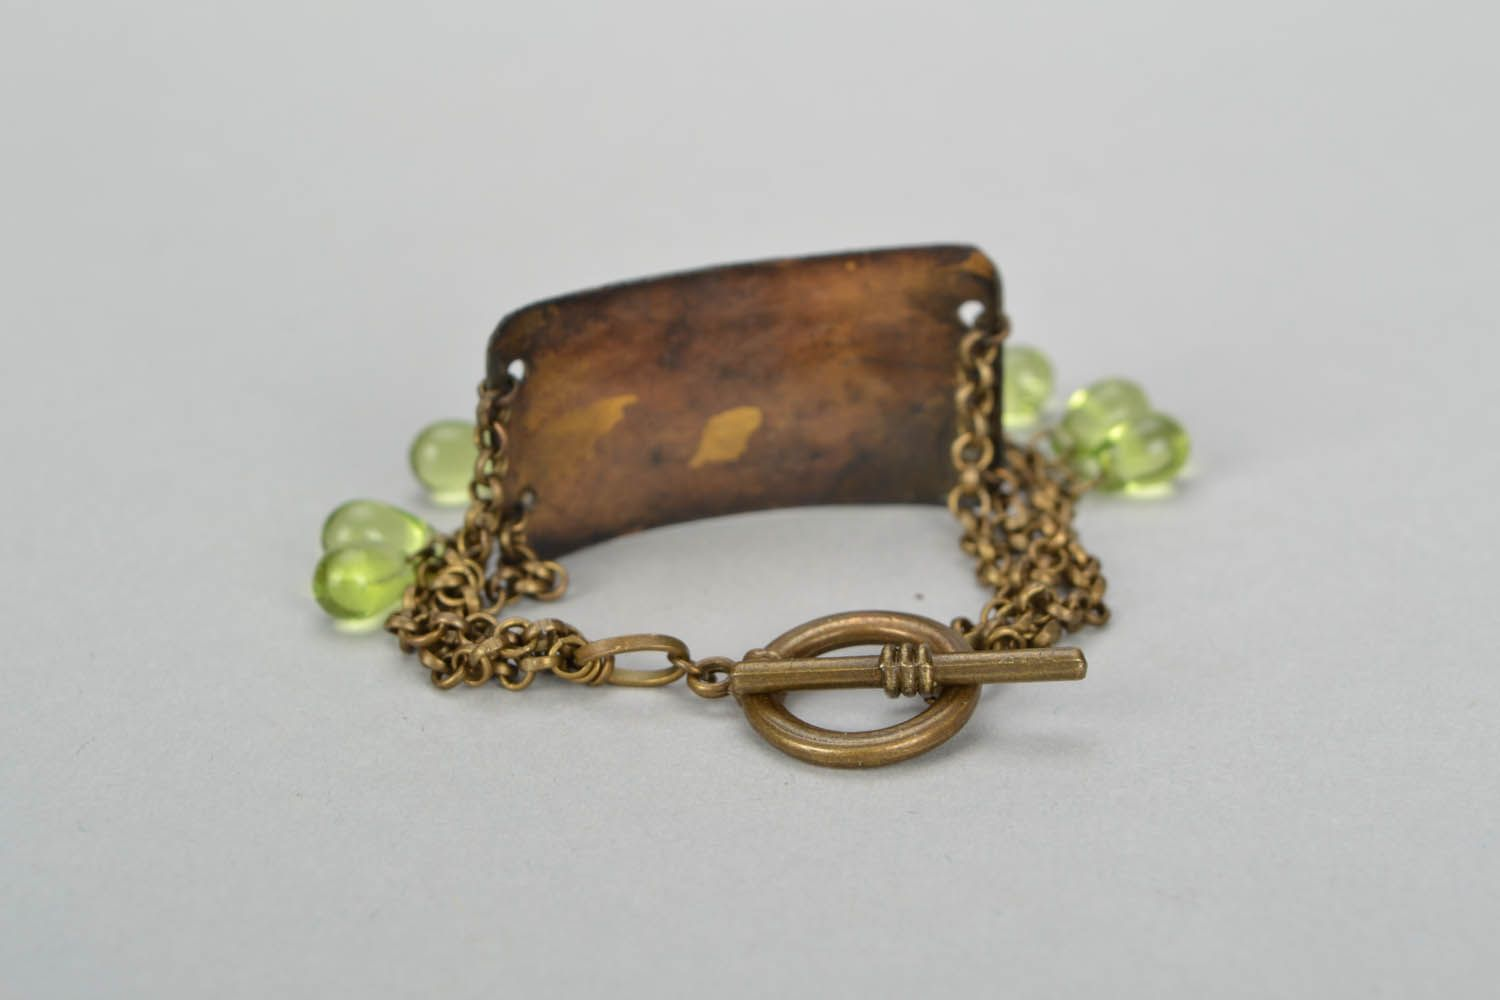 Brass bracelet with leaves photo 6